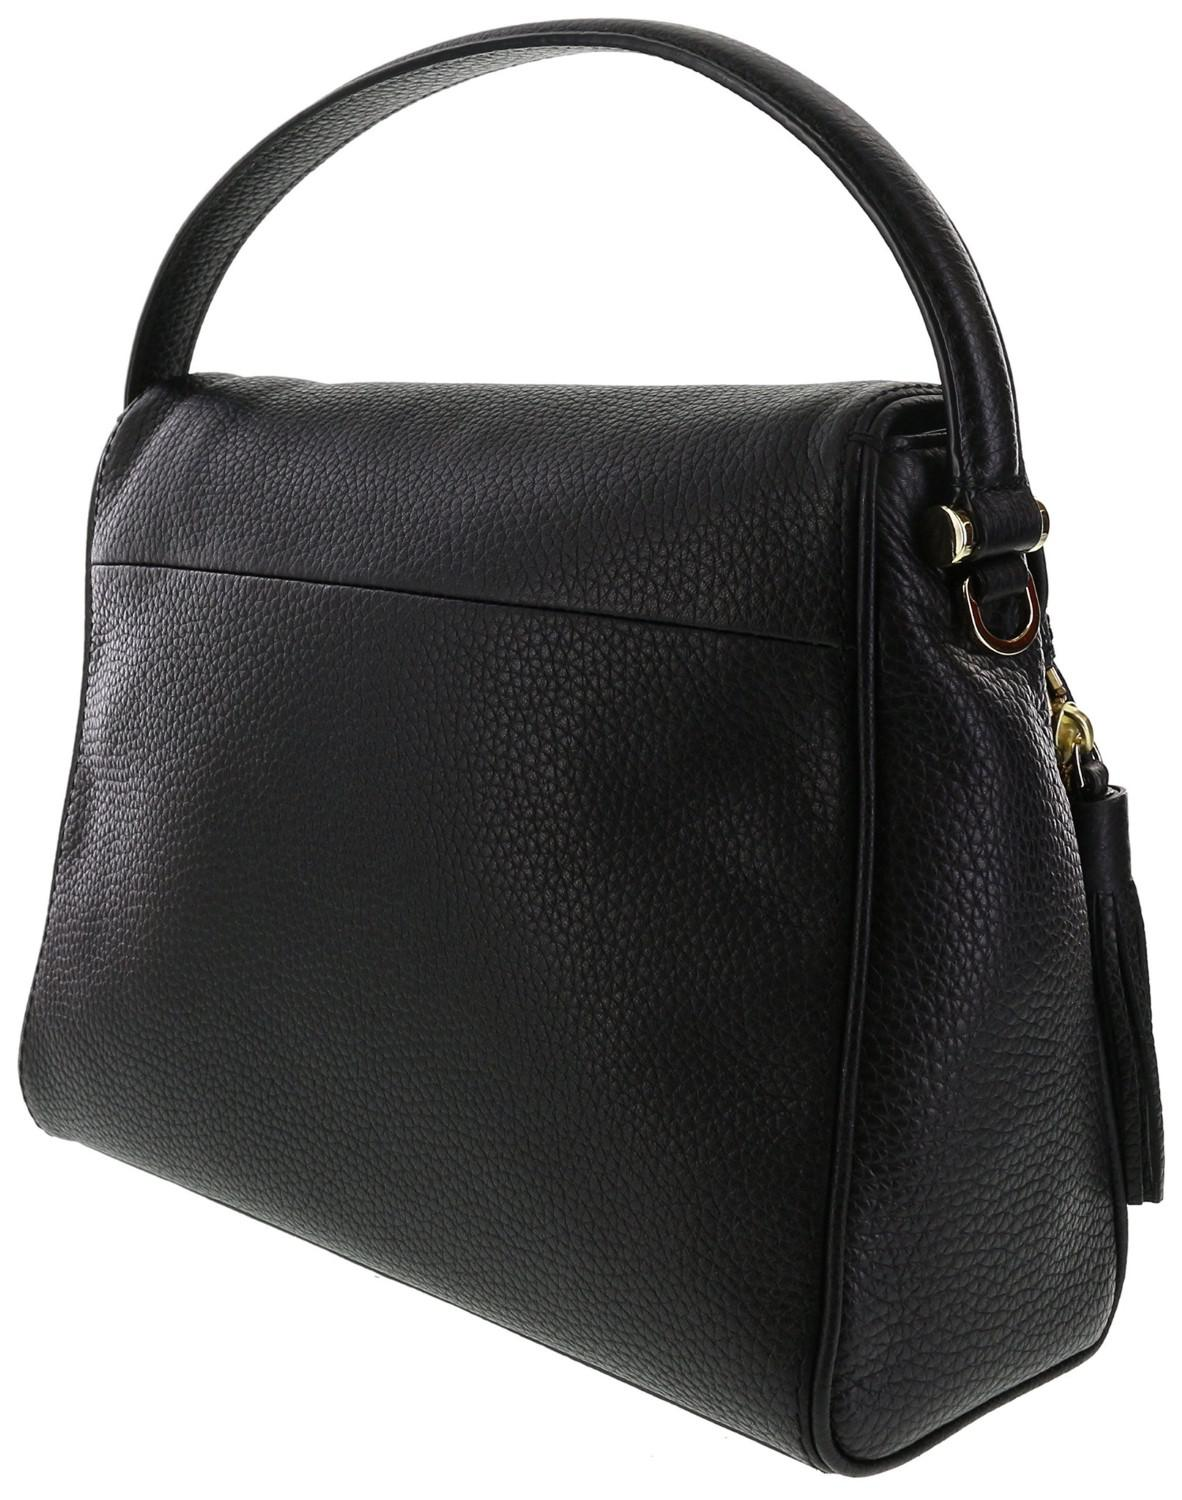 Lyst - Kate Spade Chester Street Miri Pebbled Leather Shoulder Bag ... 5edeeadca0e75